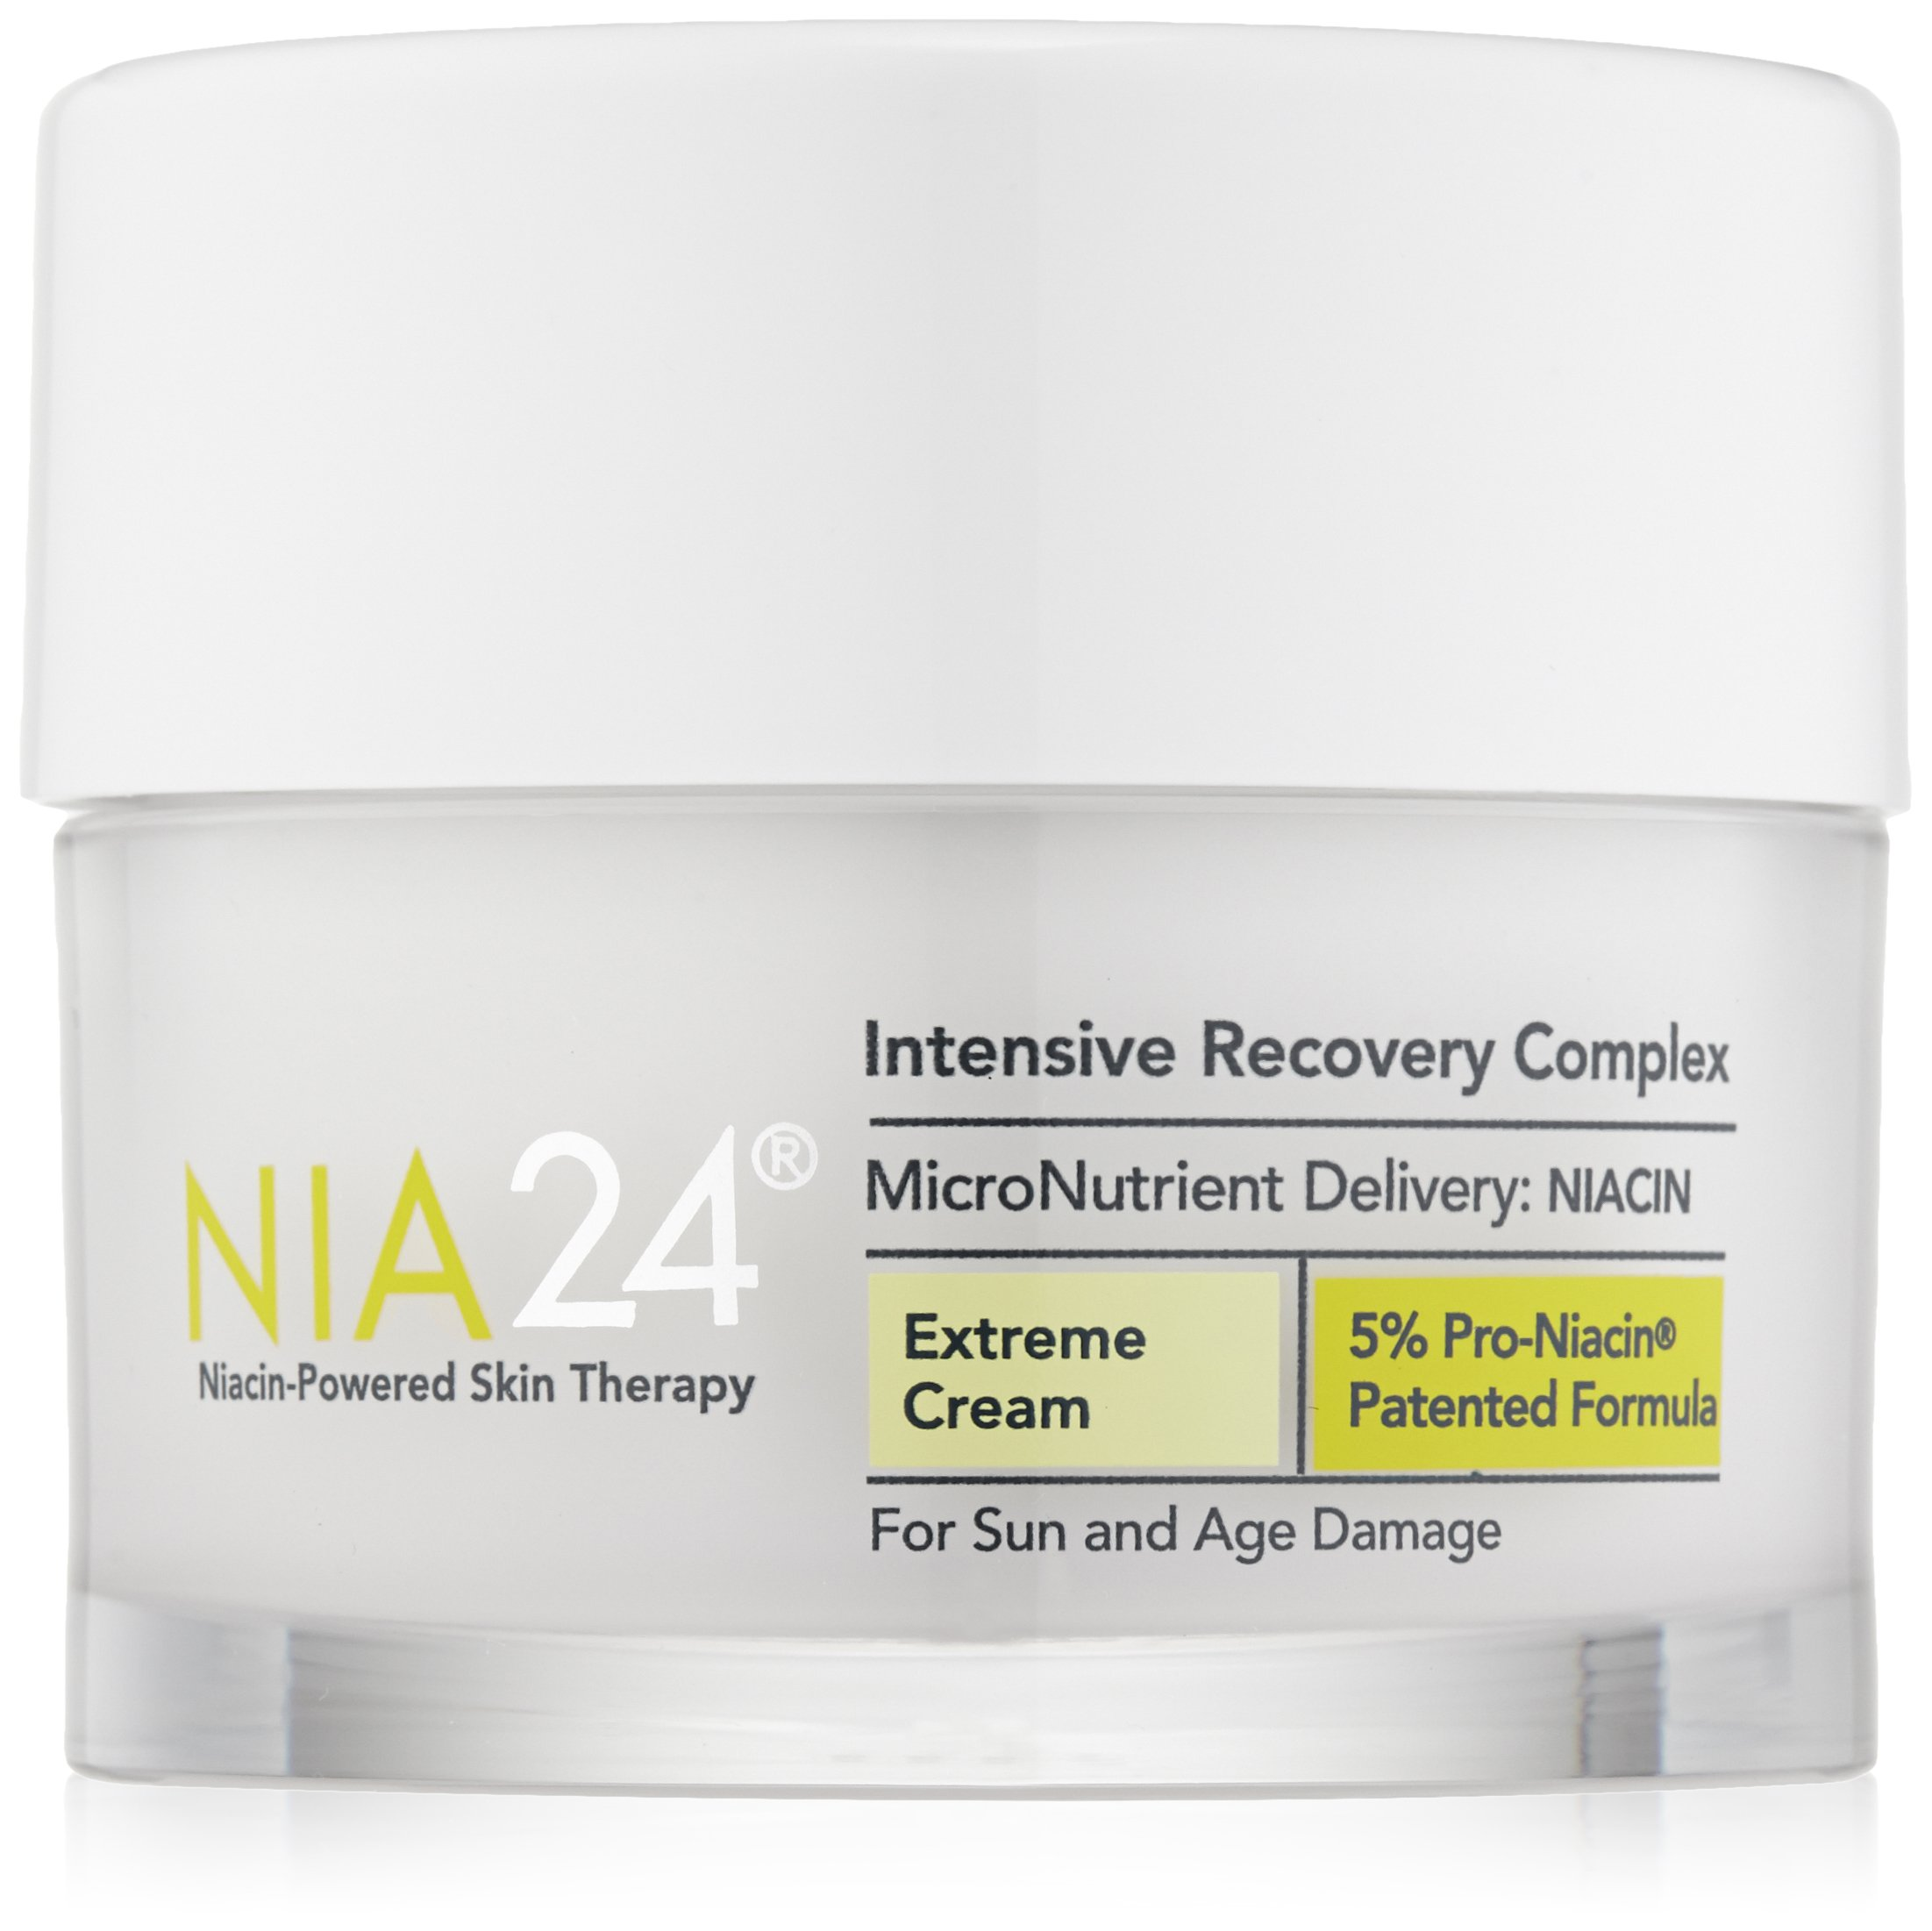 Nia 24 Intensive Recovery Complex, 1.7 fl. oz. by Nia 24 (Image #1)